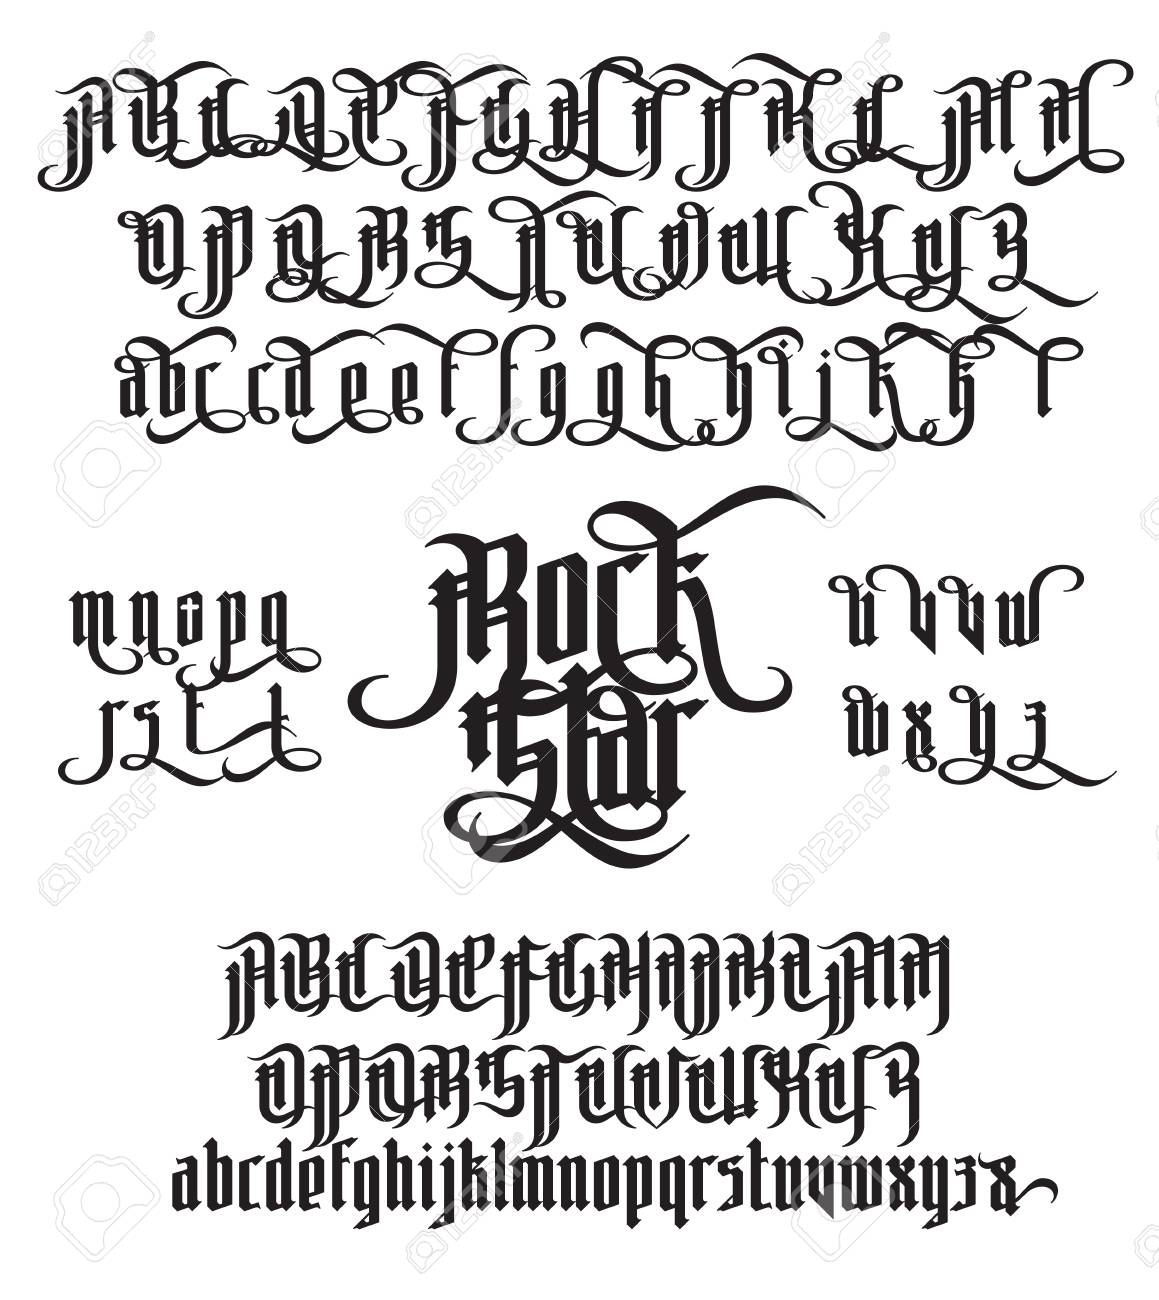 Rock Star modern gothic Style Font. - 79081179